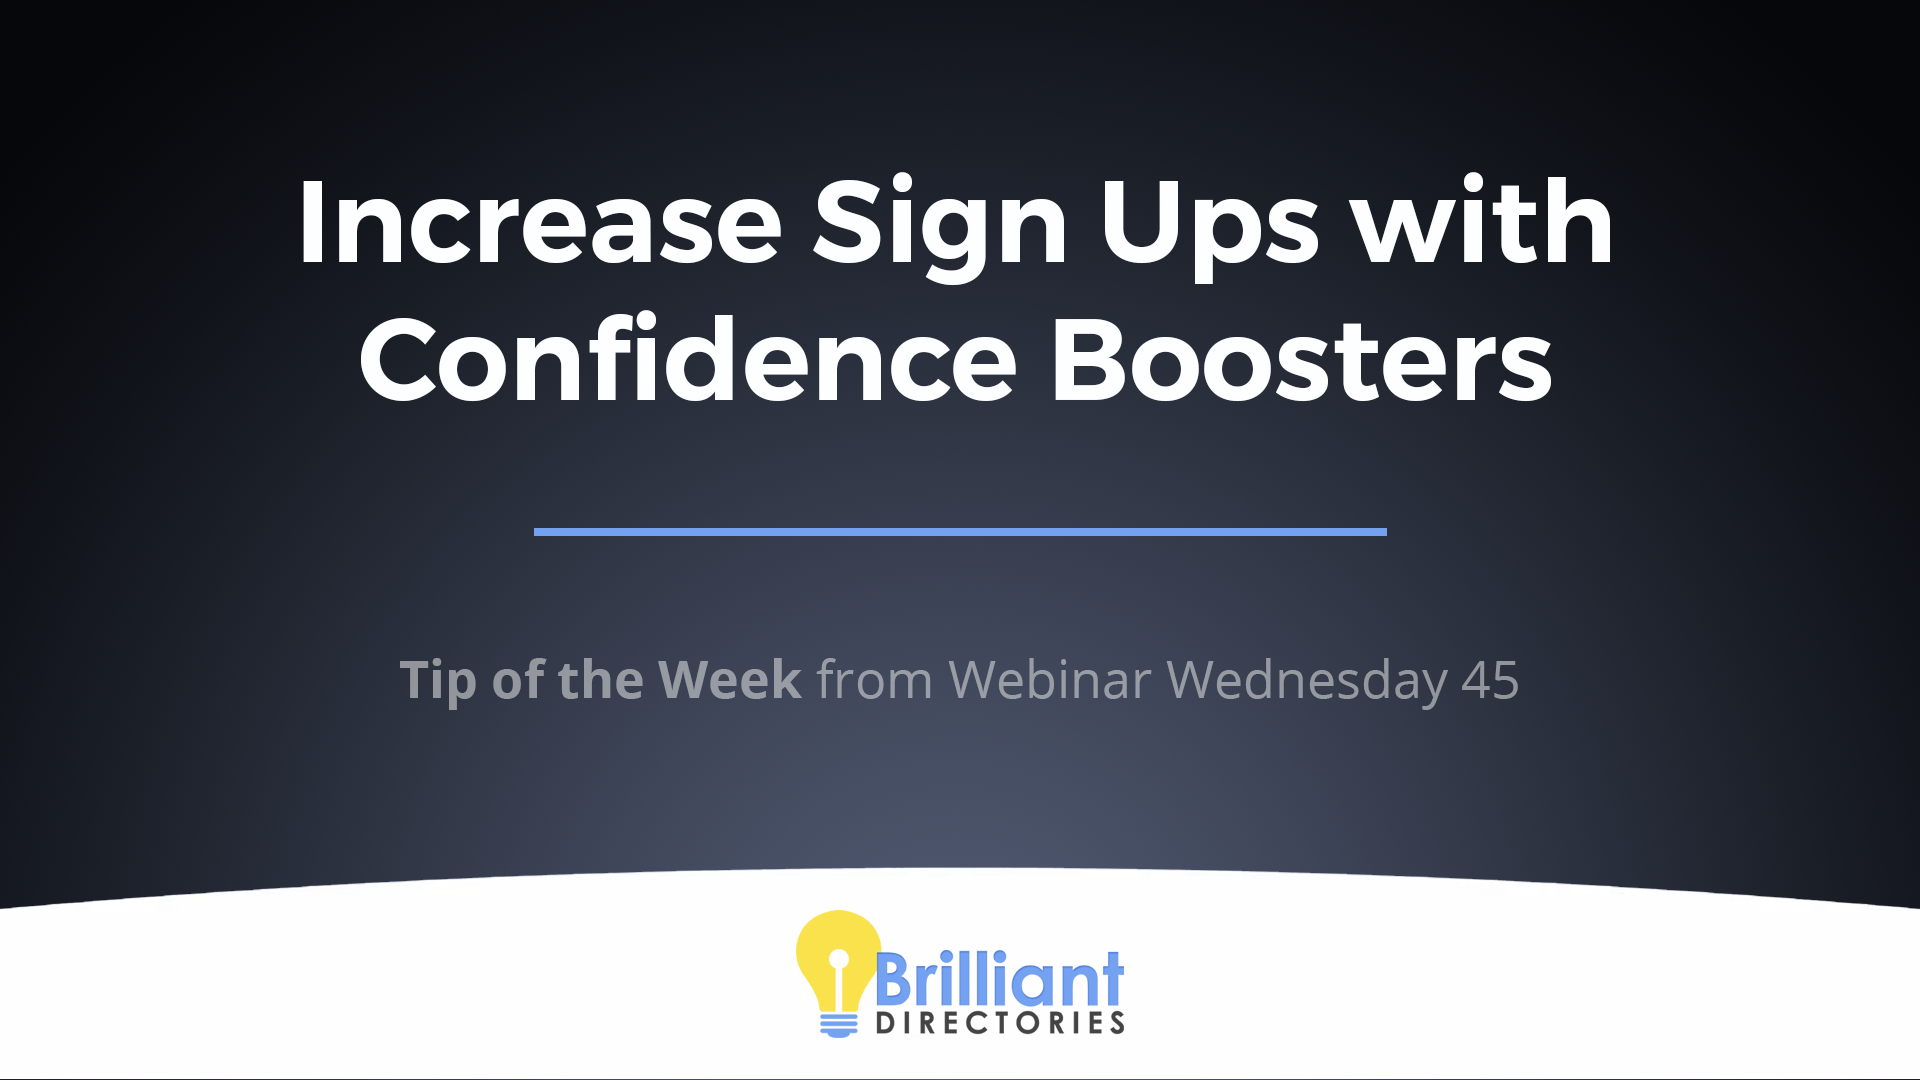 https://www.brilliantdirectories.com/blog/5-ways-to-optimize-checkout-pages-to-increase-membership-sign-ups-directory-website-tips